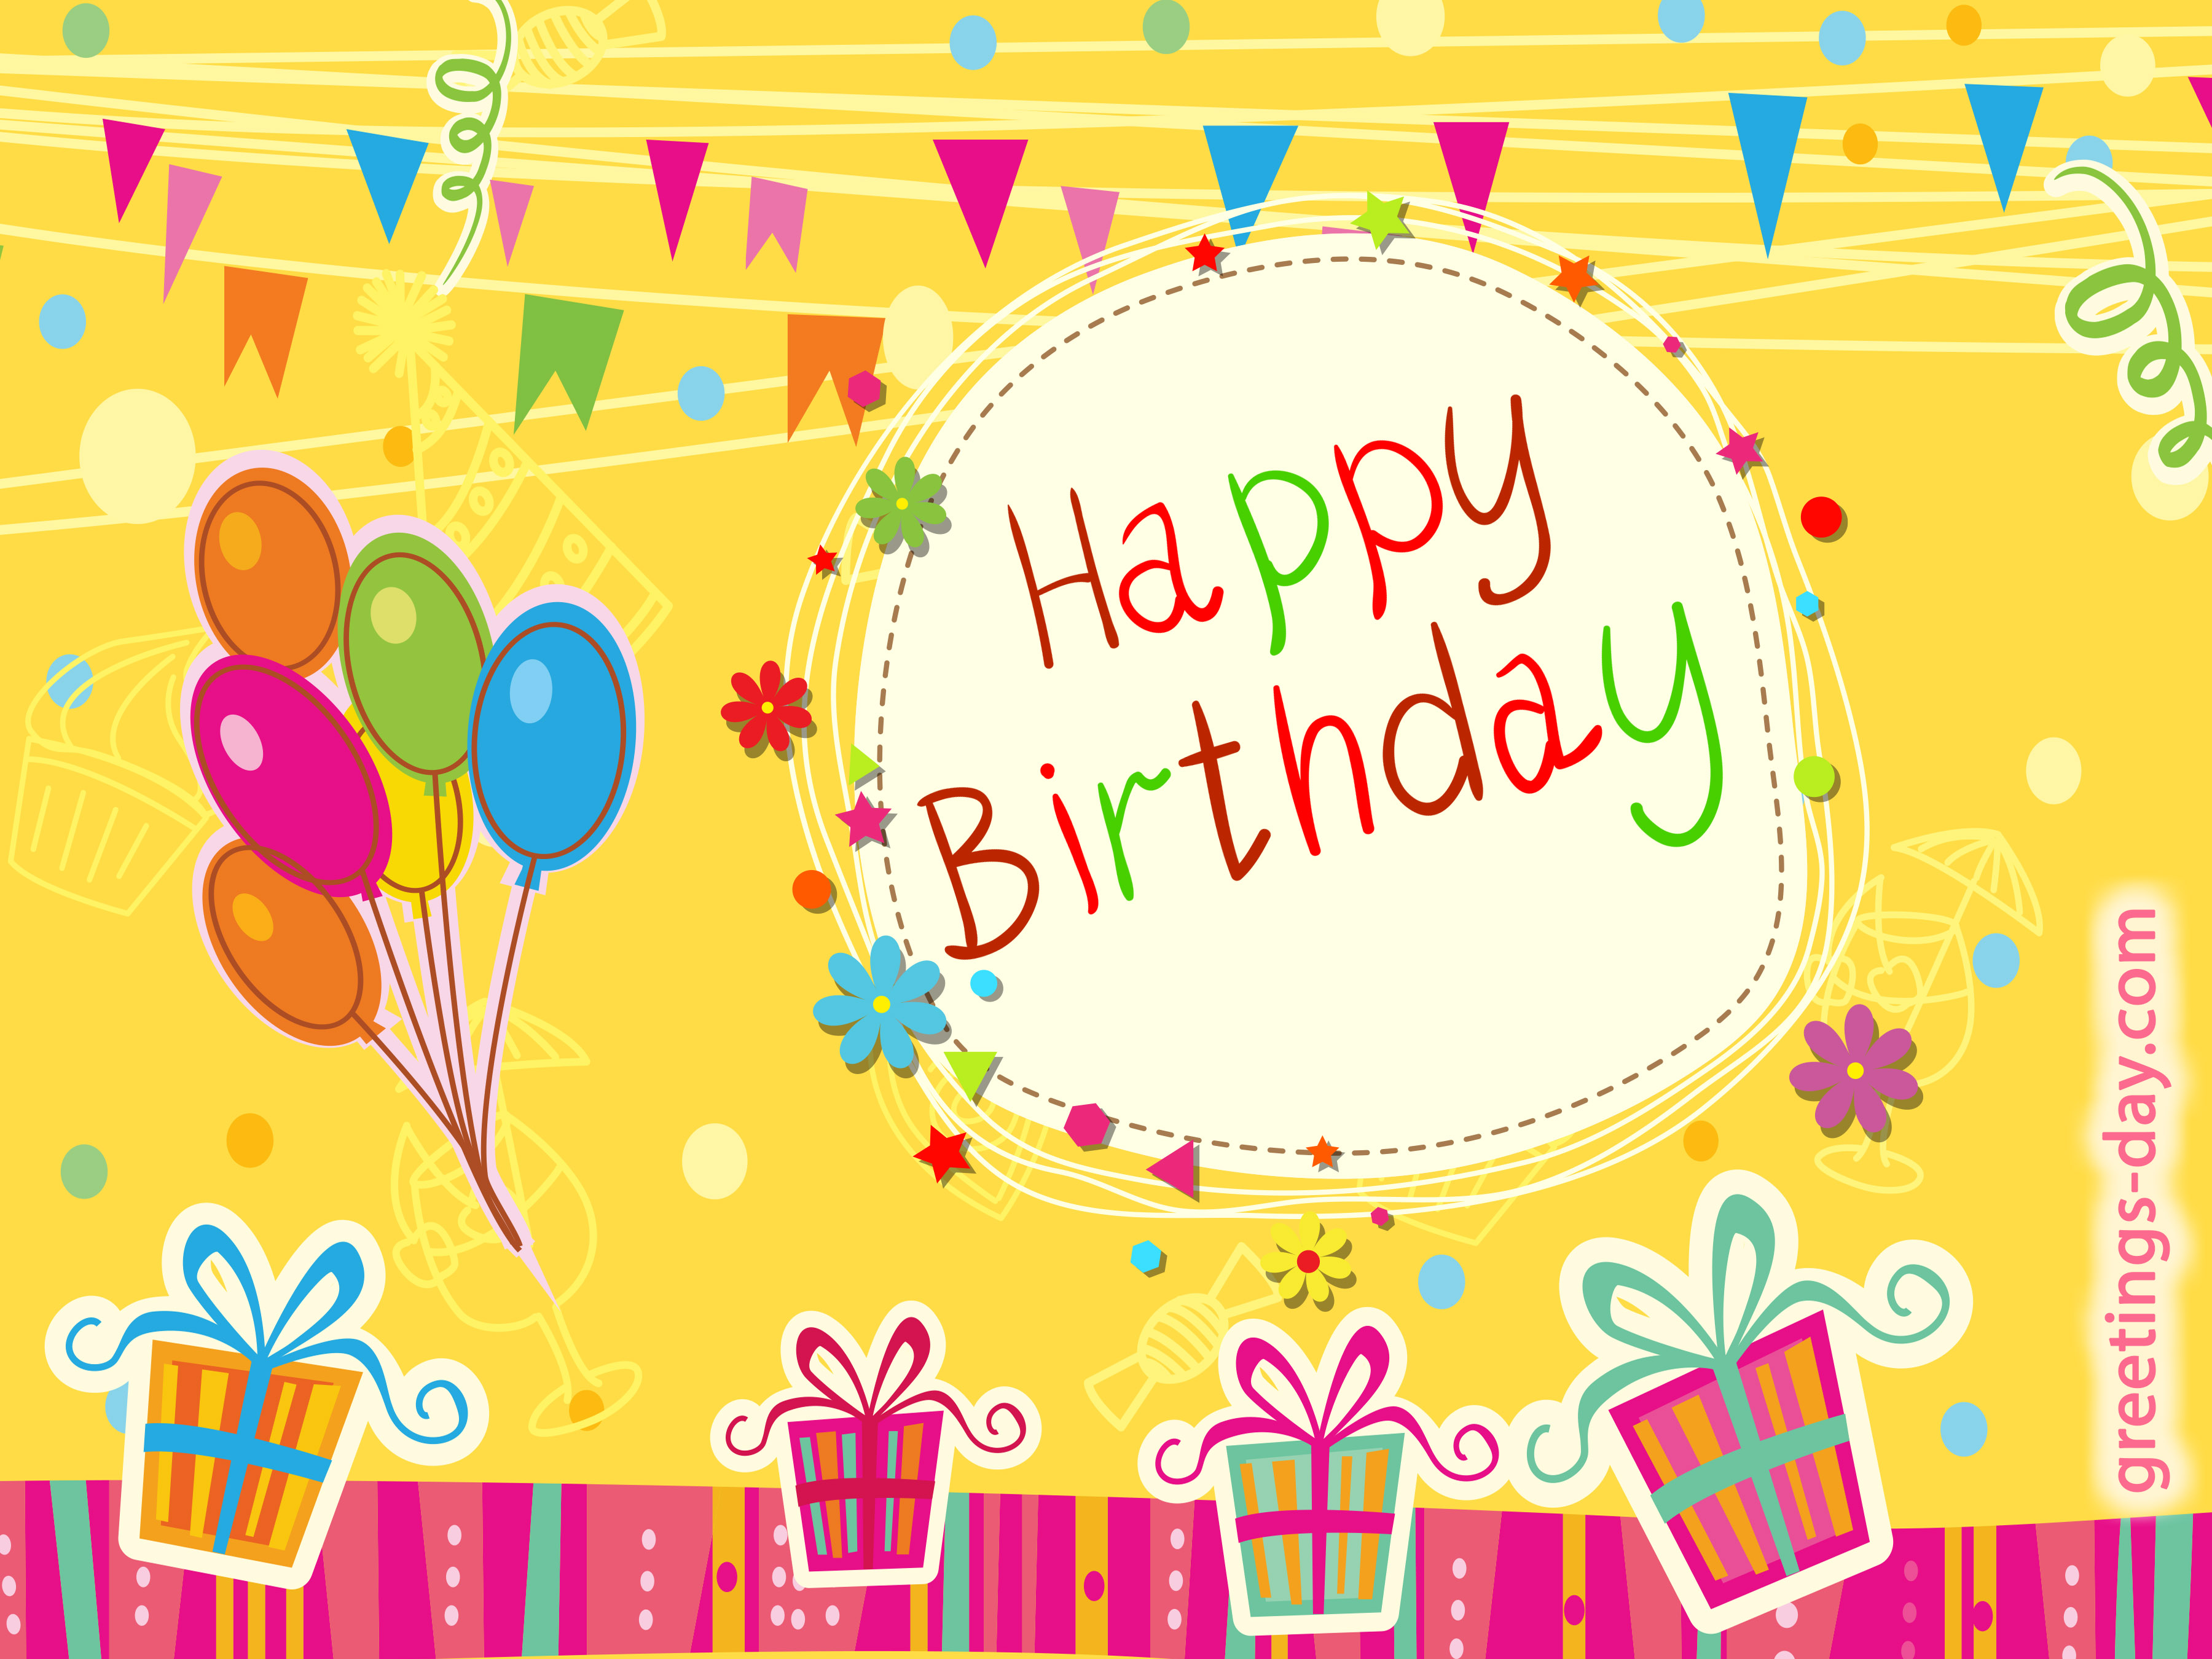 Happy birthday greeting Cards. Share image to you friend on birthday.